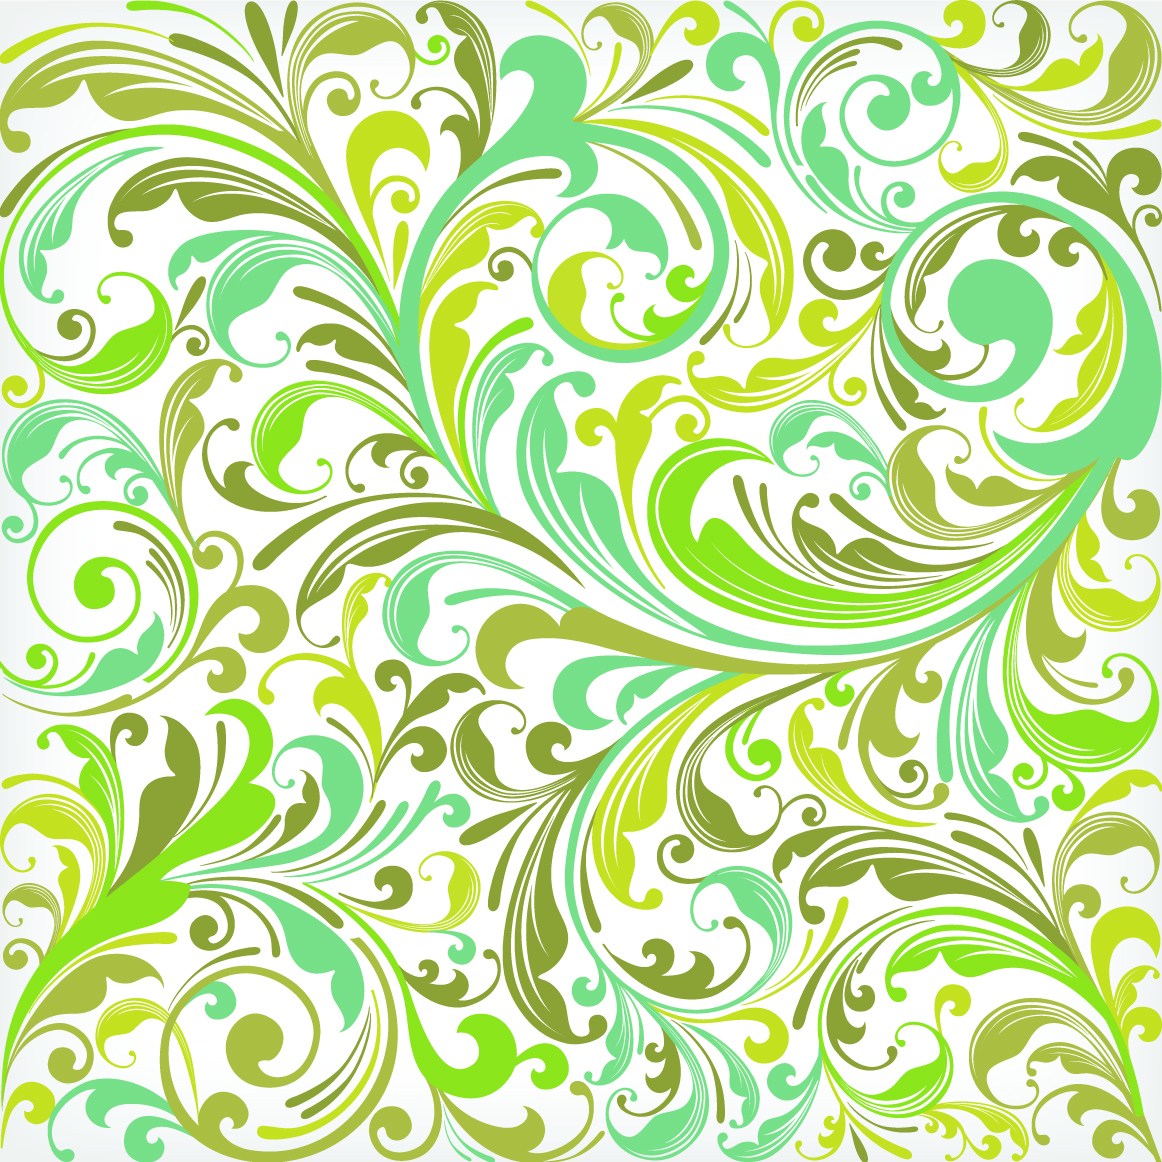 1162x1162 Pattern Background Images)